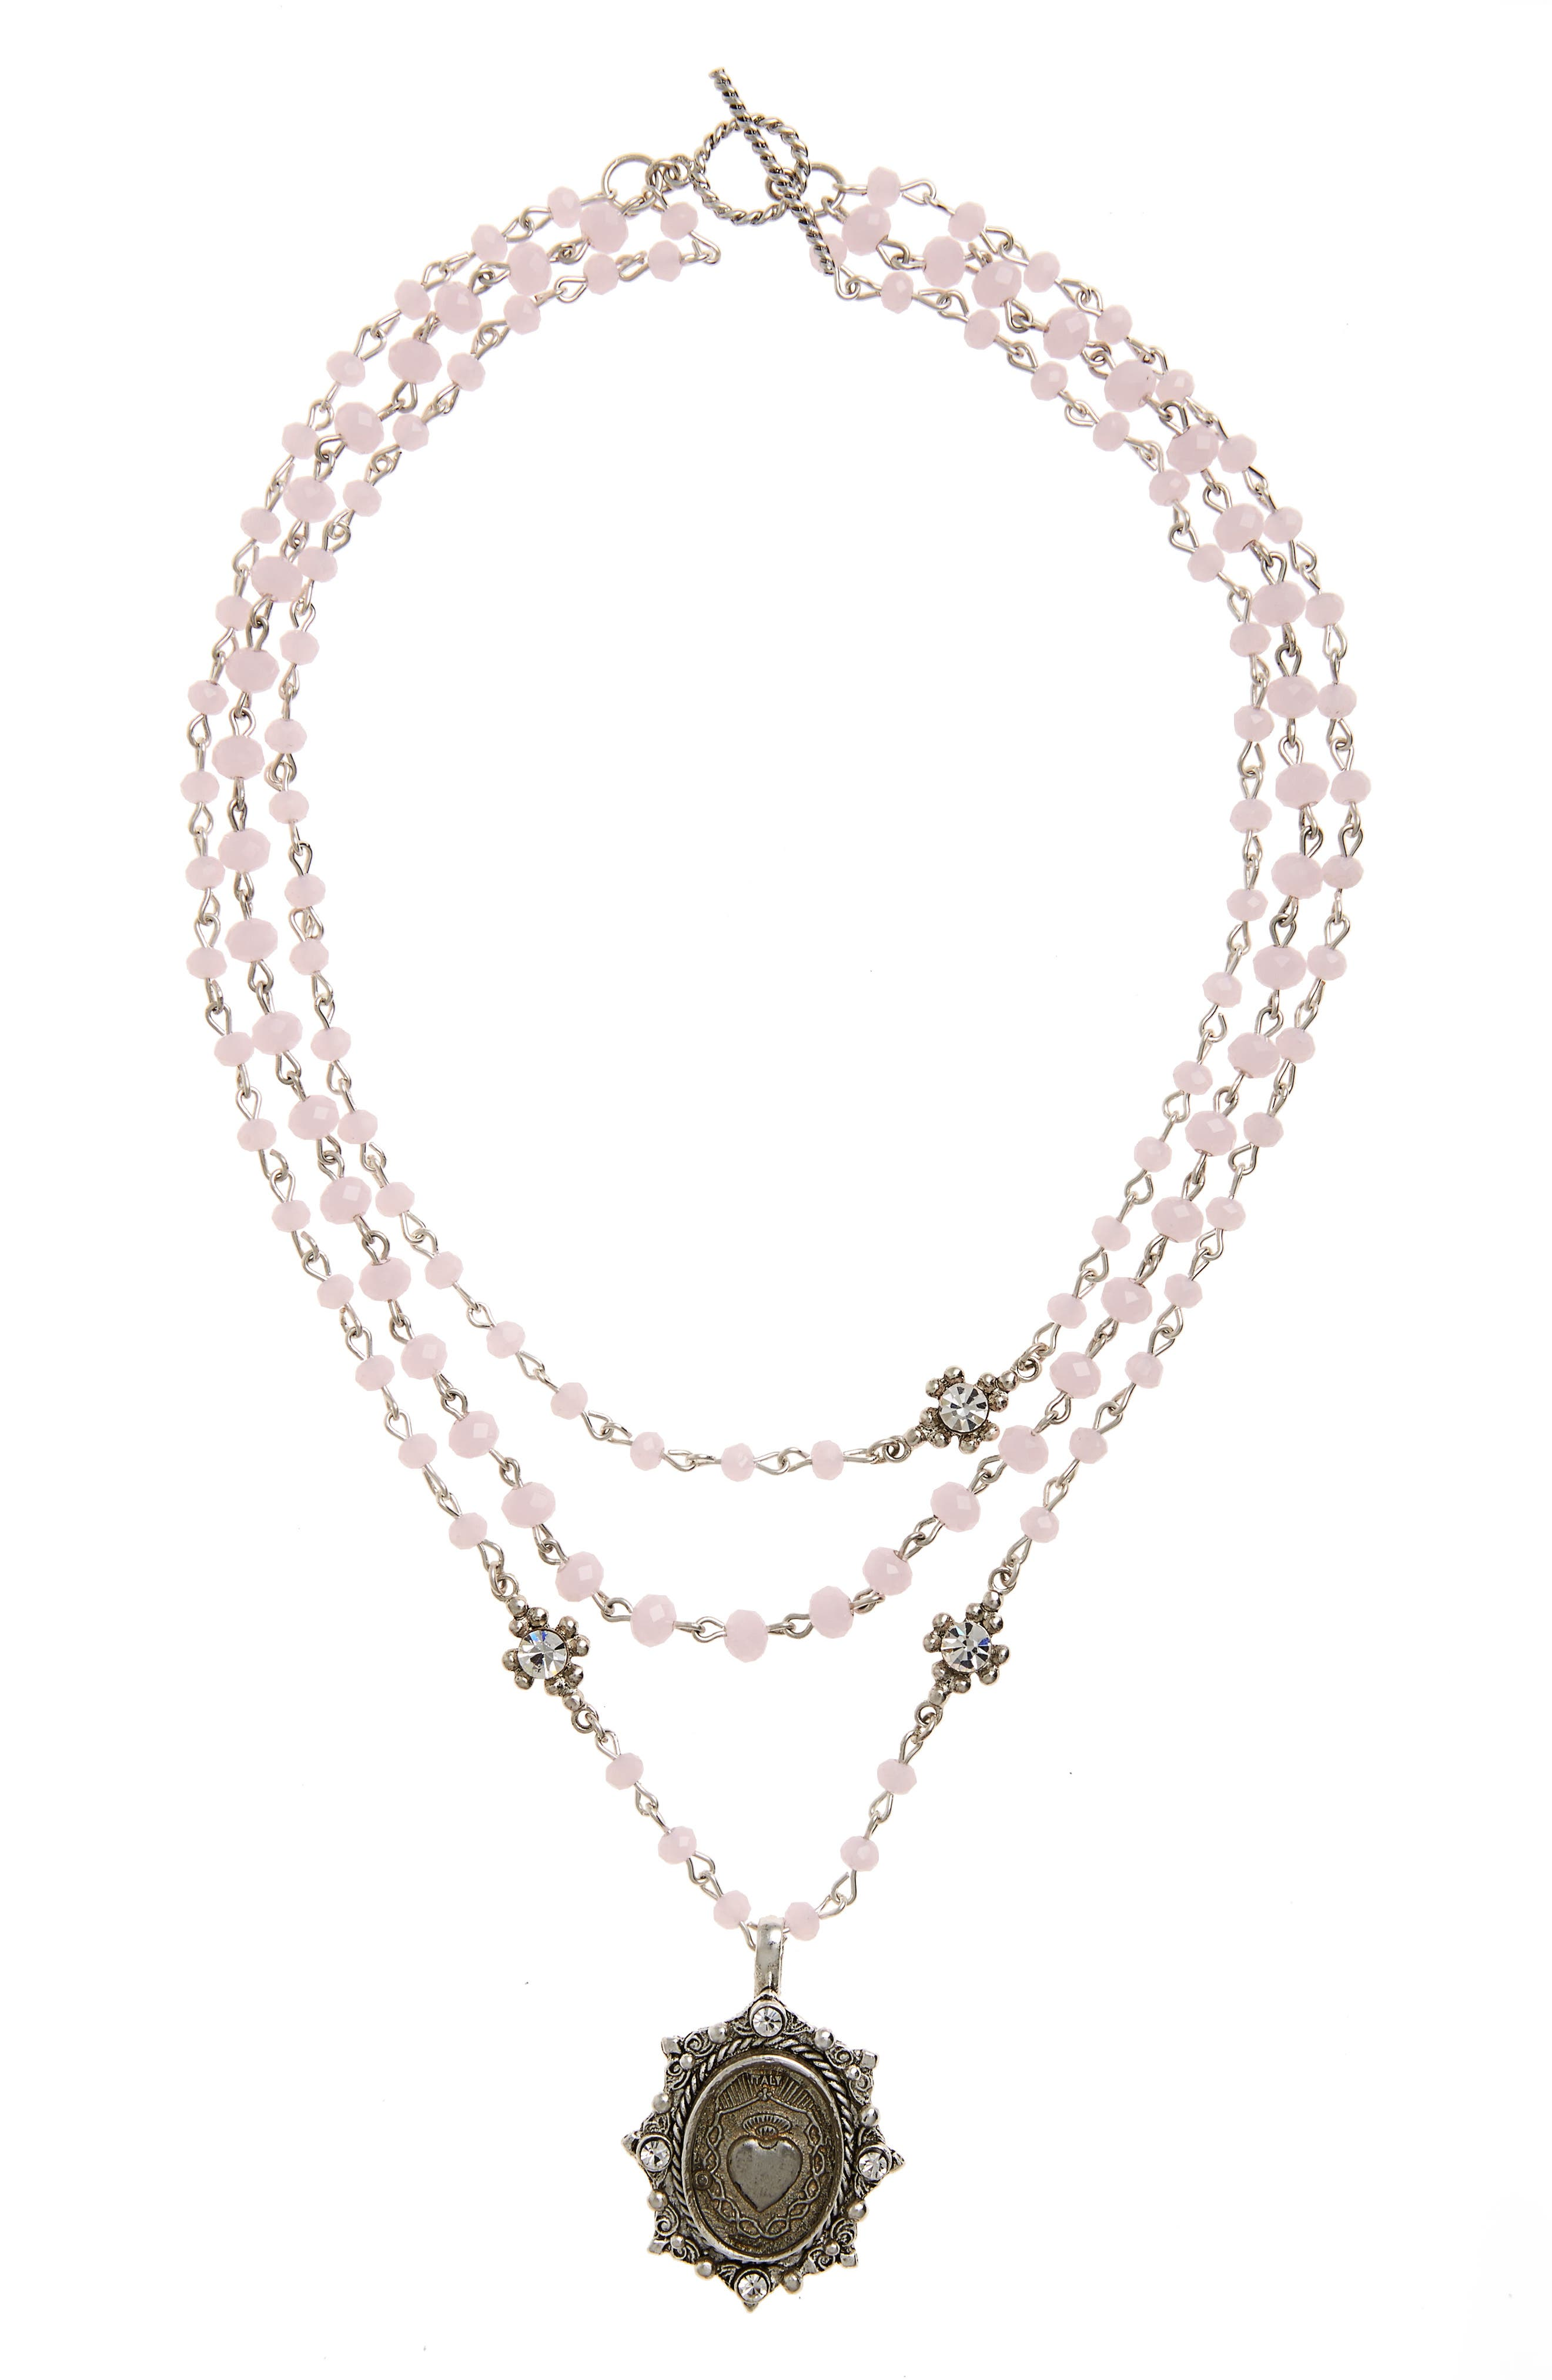 Virgins Saints & Angels Heart Magdalena Multistrand Necklace